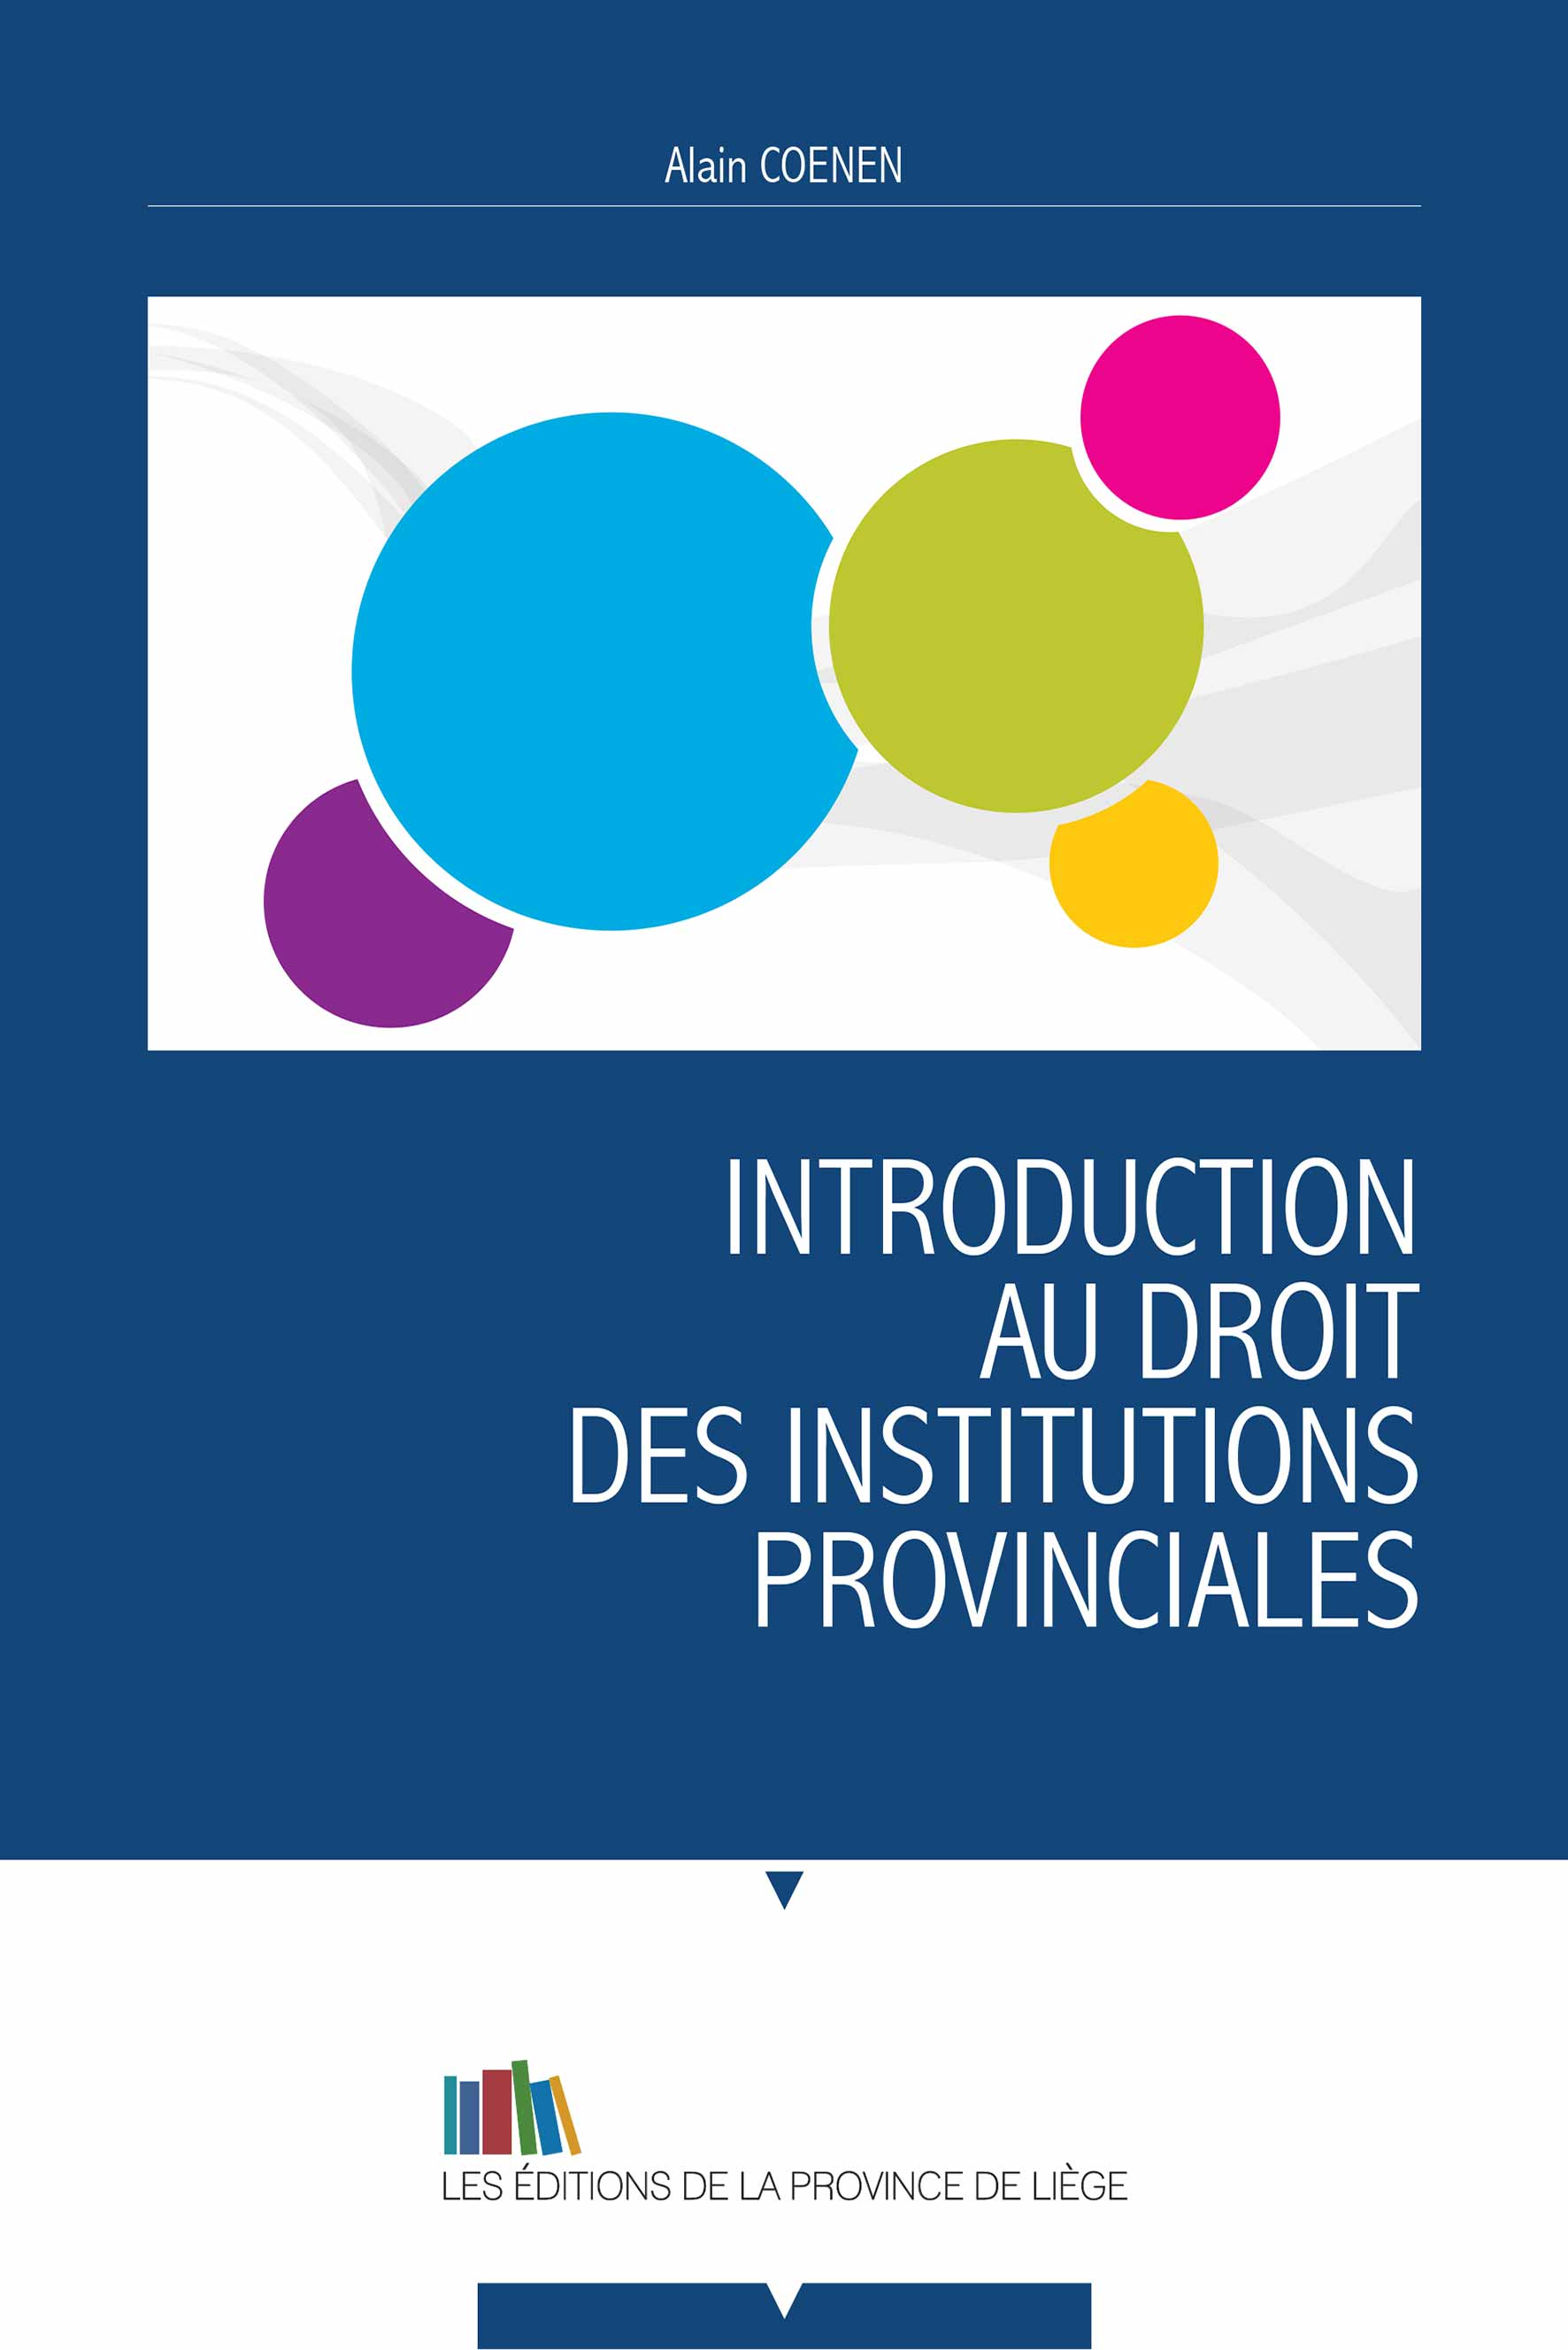 Introduction au droit des institutions provinciales